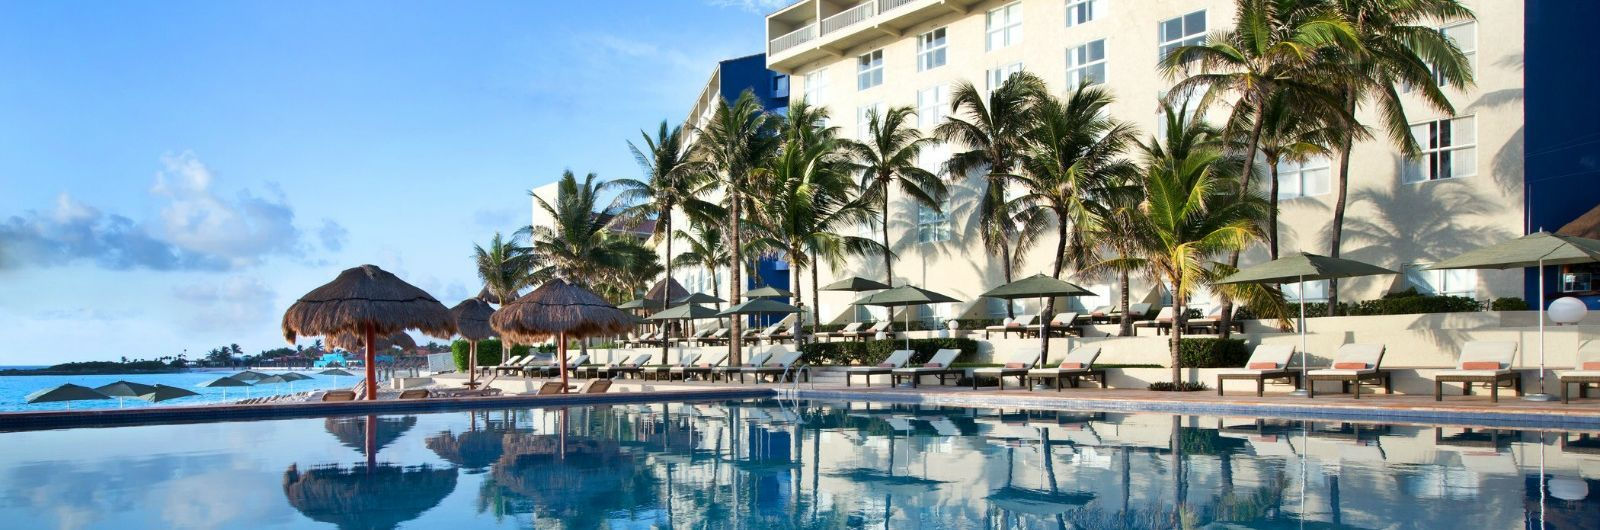 Resort Pools - The Westin Cancun Resort & Spa